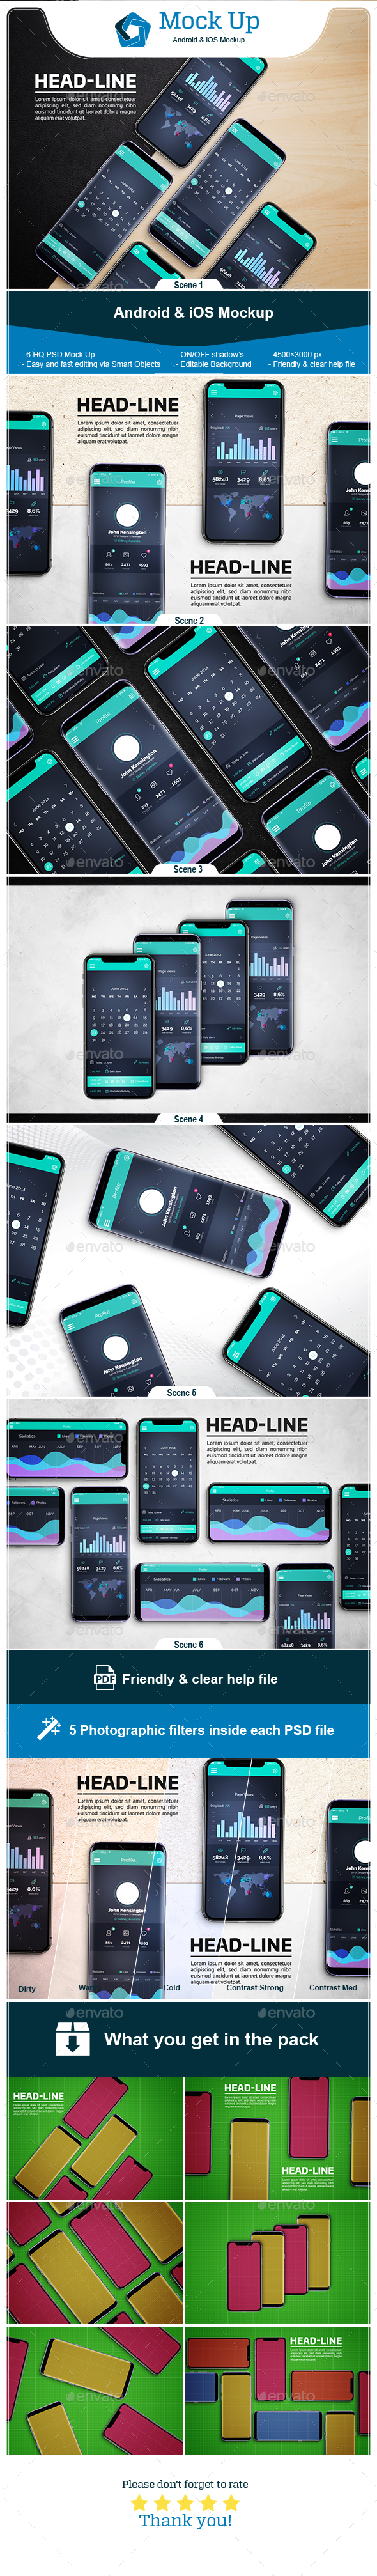 Android & iOS Mockup - Mobile Displays